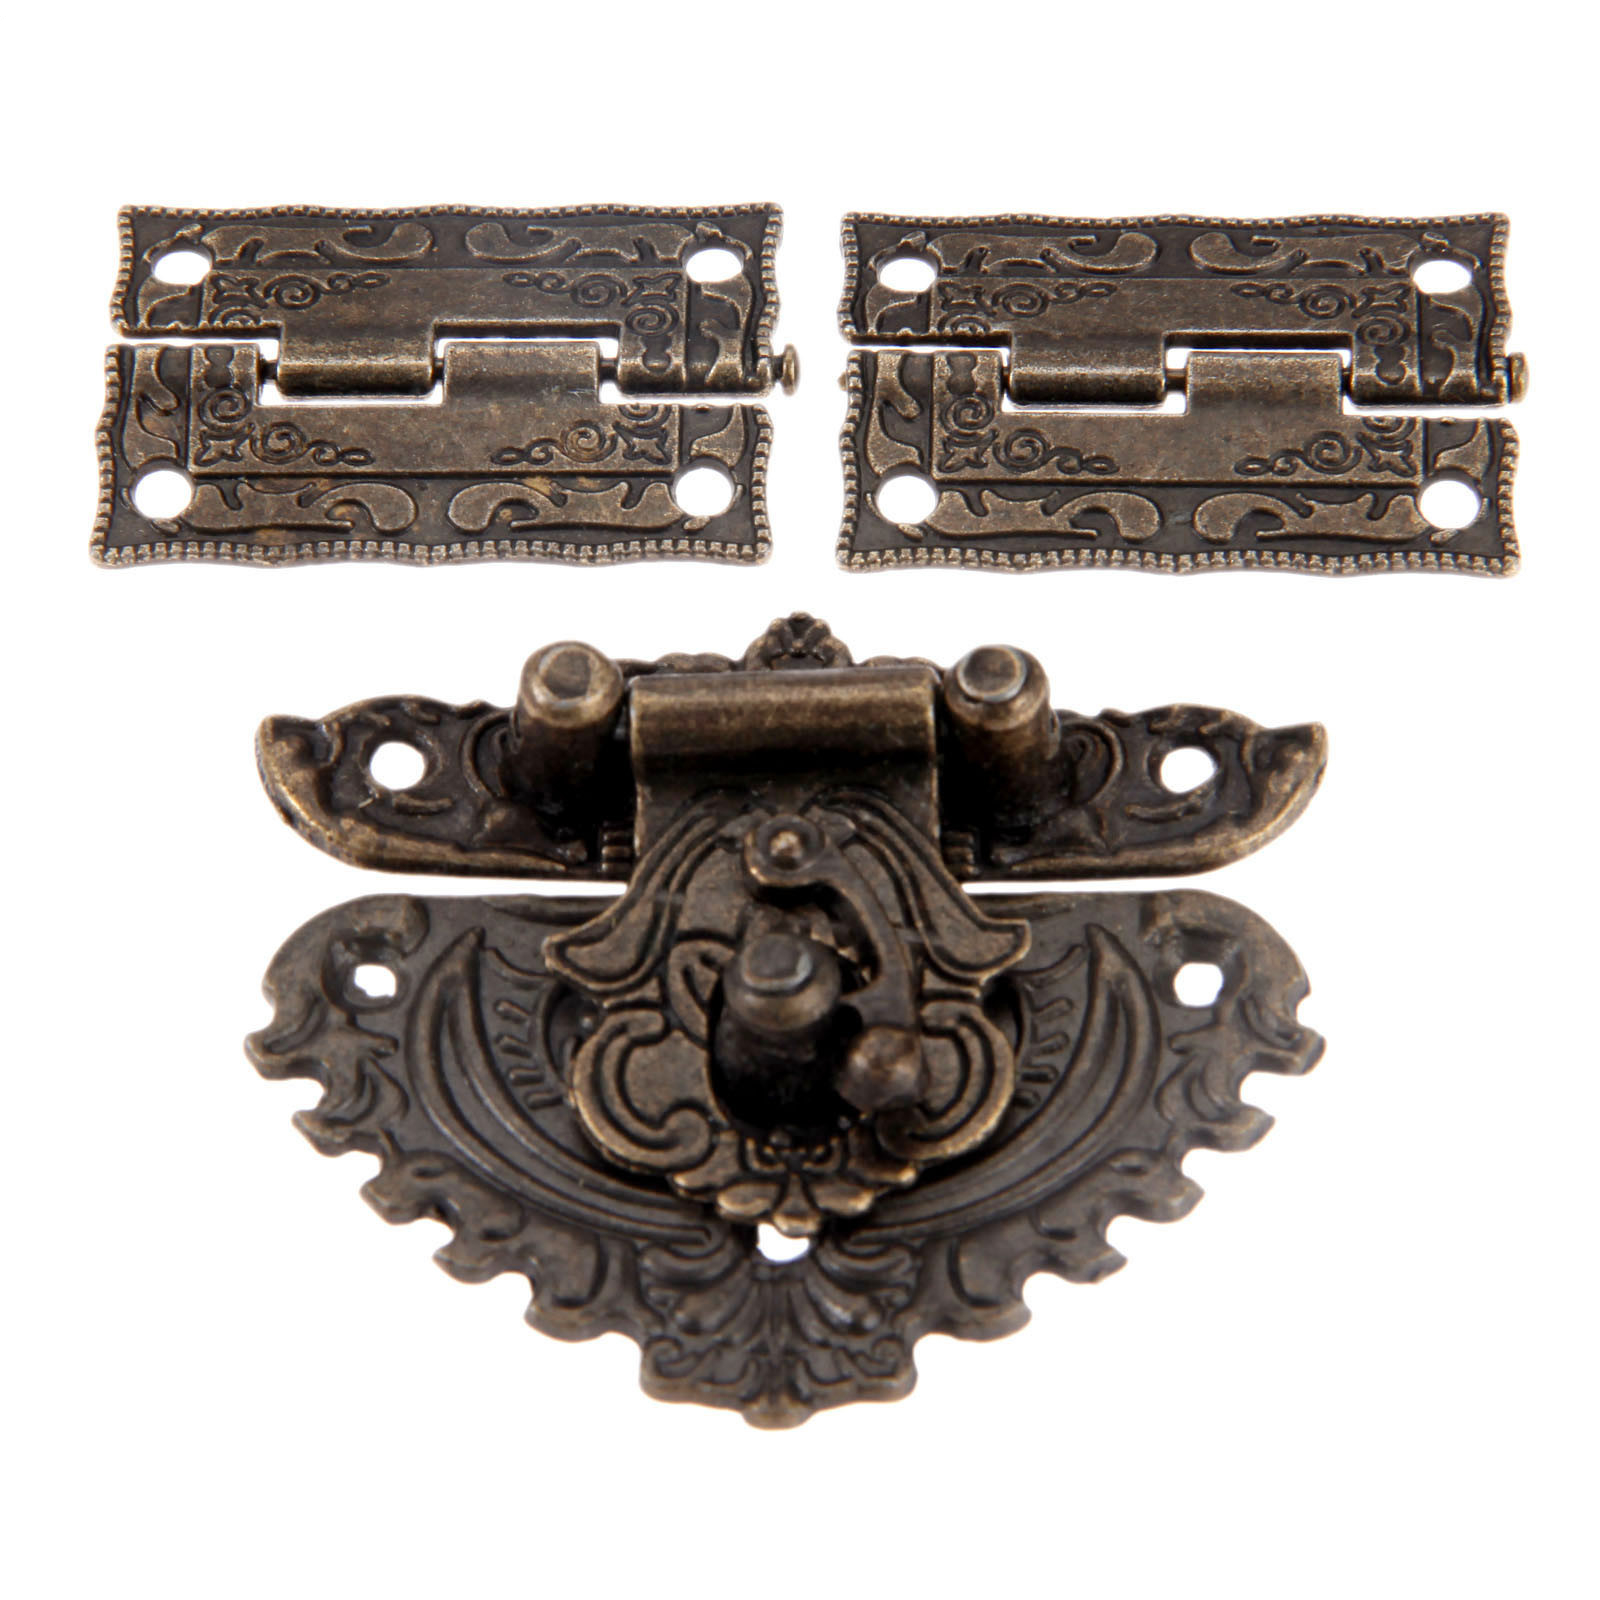 Antique Bronze Furniture Hardware Box Latch Hasp Toggle Buckle + 2Pcs Decorative Cabinet Hinges for Jewelry Wooden Box